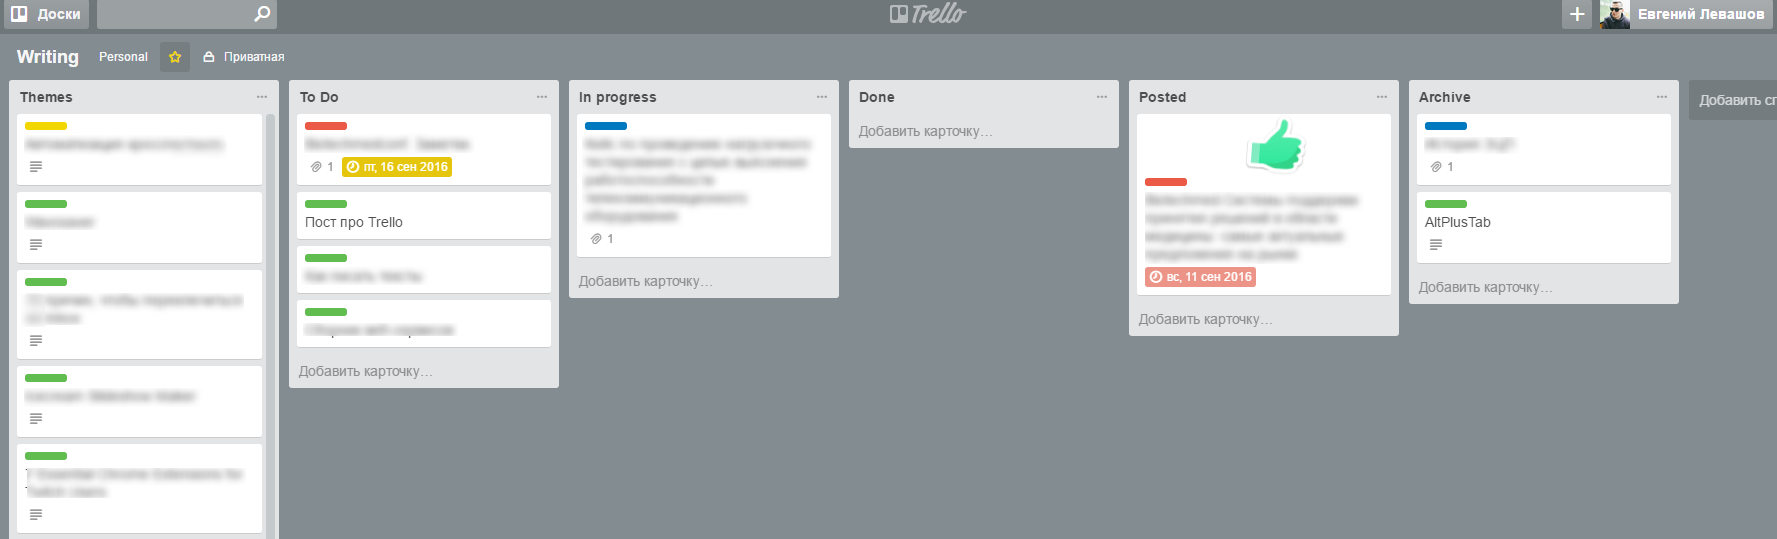 writing-trello